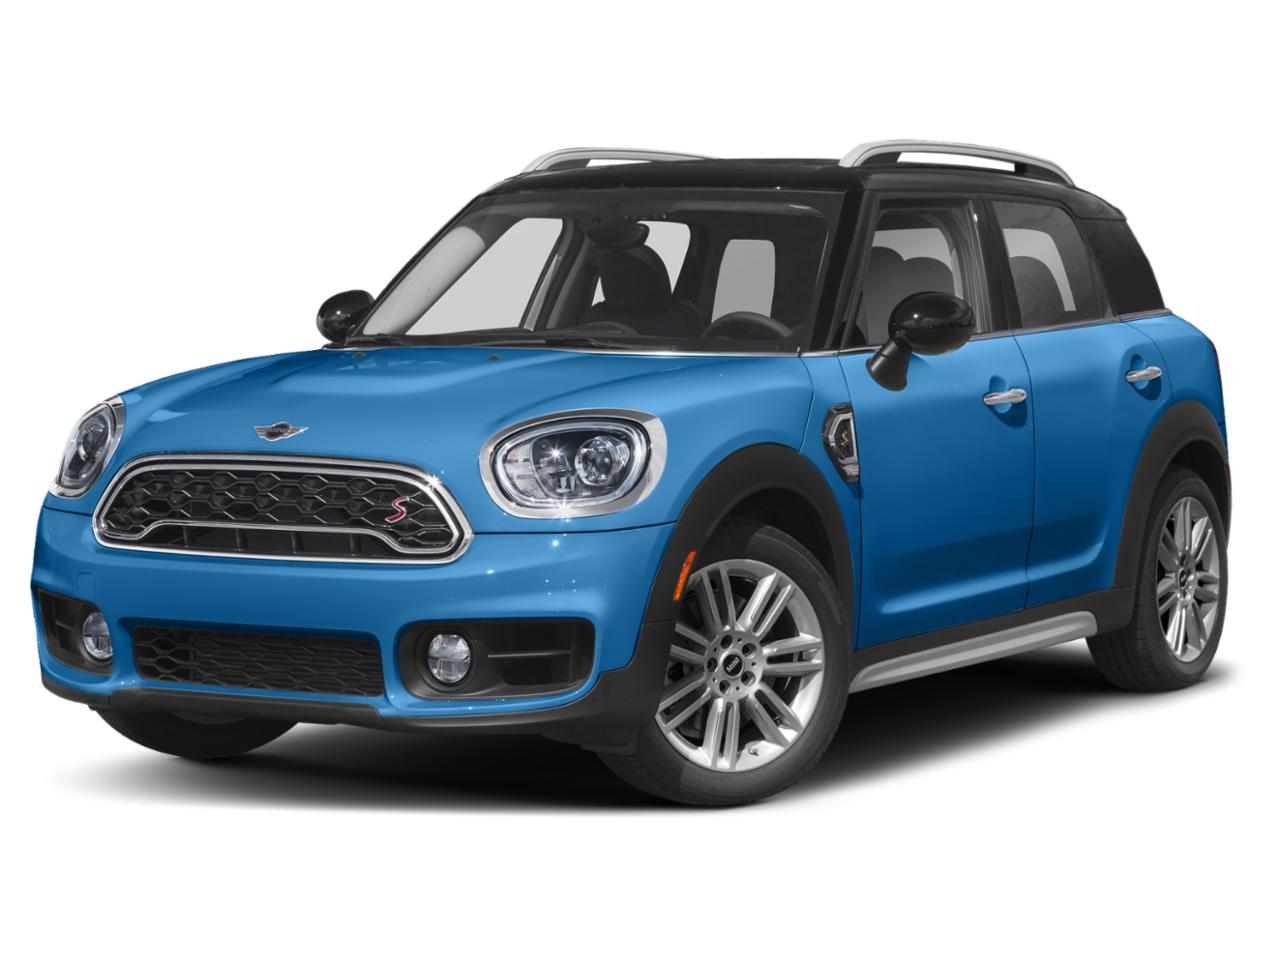 2020 MINI Cooper S Countryman Iconic Vehicle Photo in Corpus Christi, TX 78411